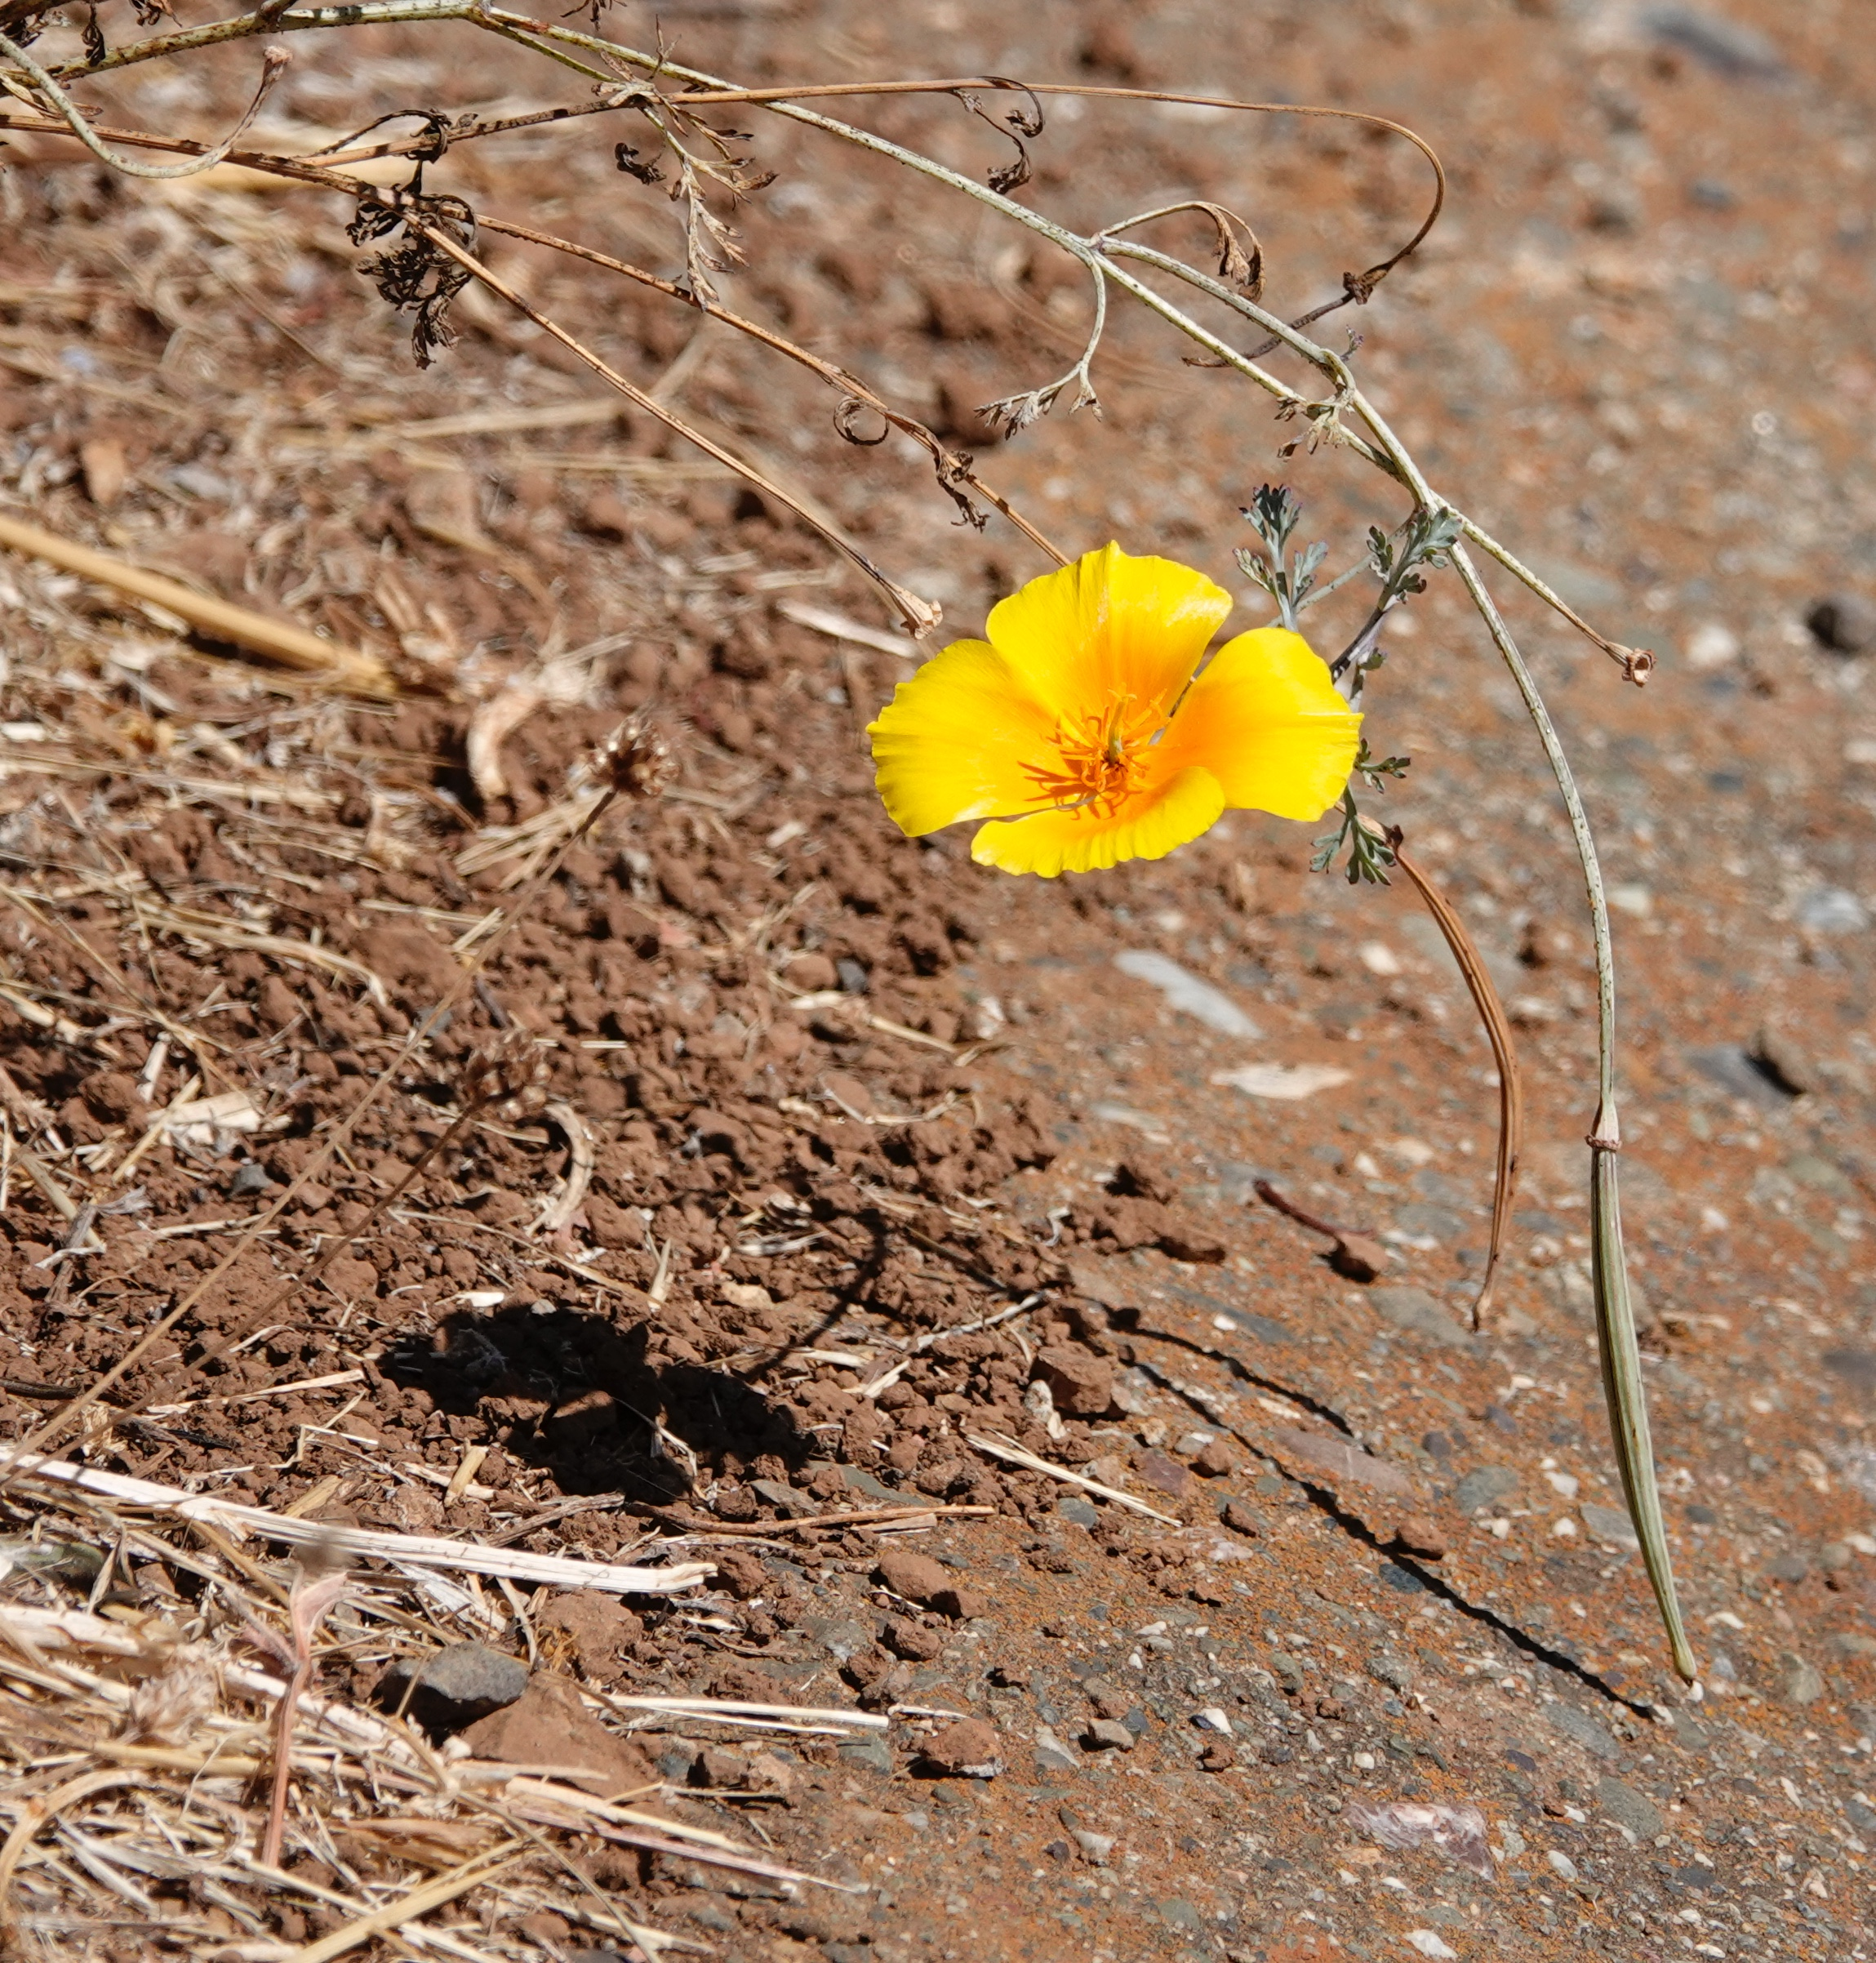 This tiny California poppy, like a kind word, casts a long shadow.